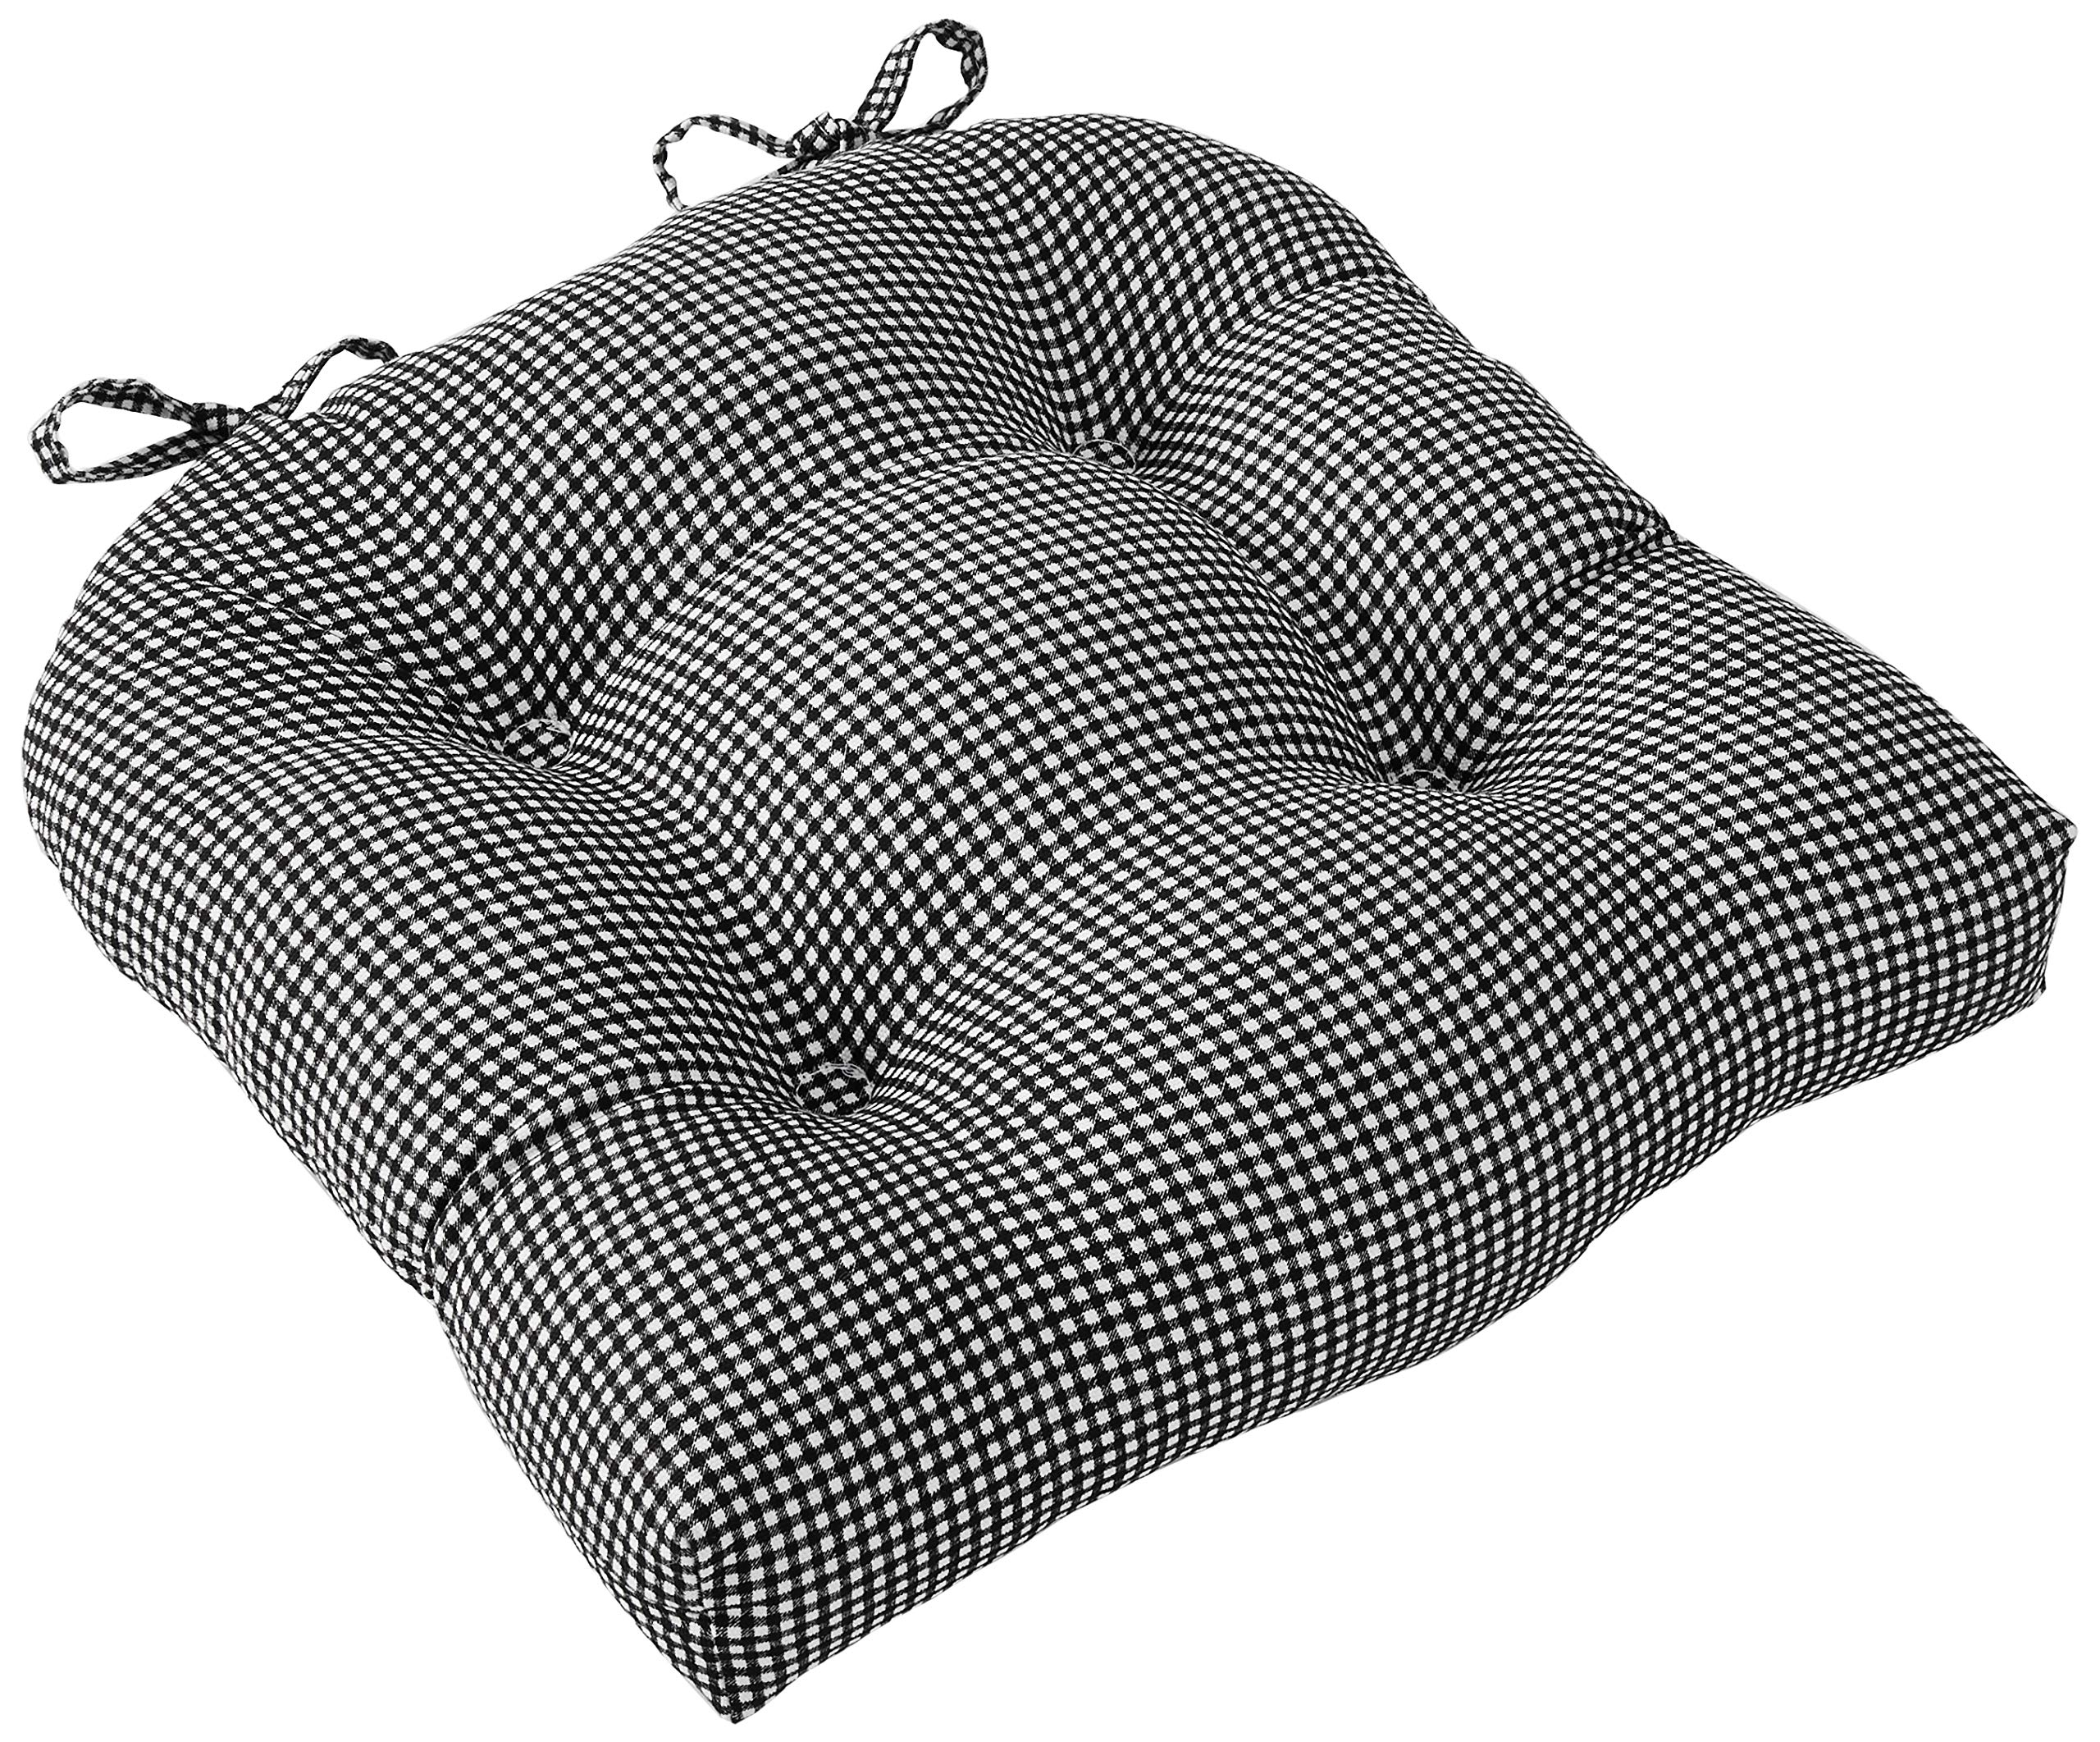 Ellis Curtain Logan Gingham Check Print Cushioned Chair Pad, Black by Ellis Curtain